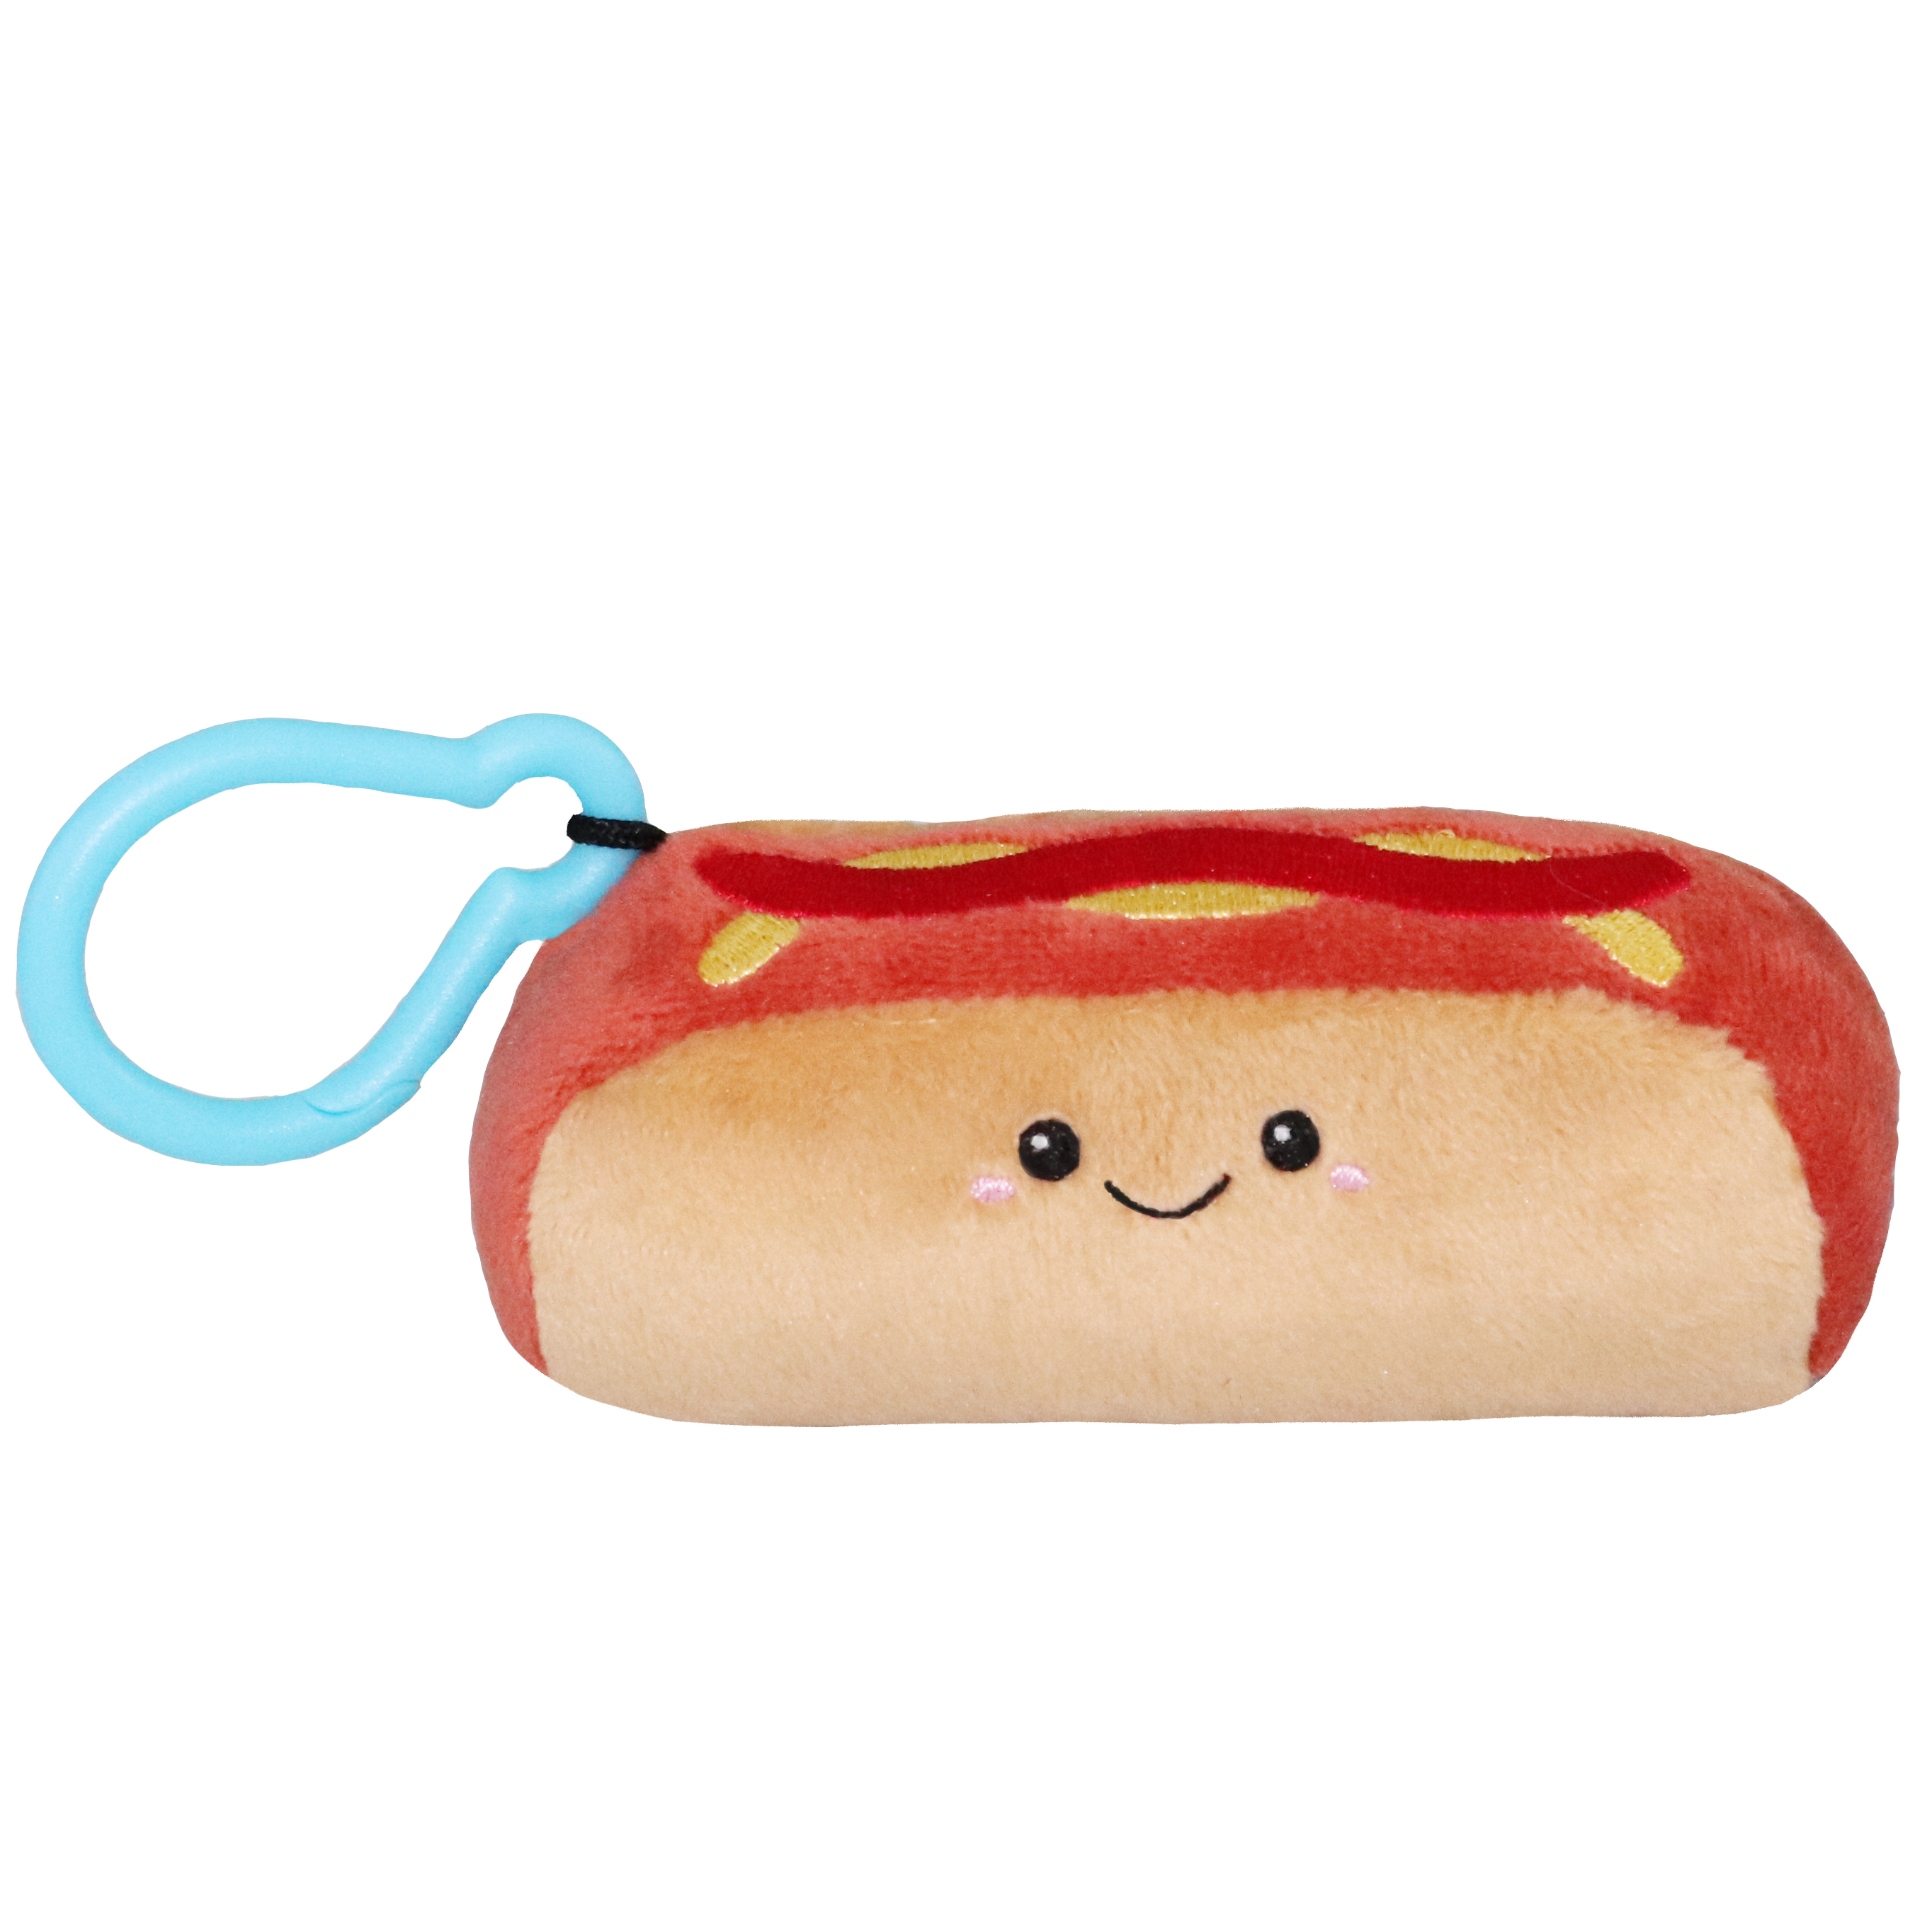 micor_hot_dog_no_hands_large.jpg